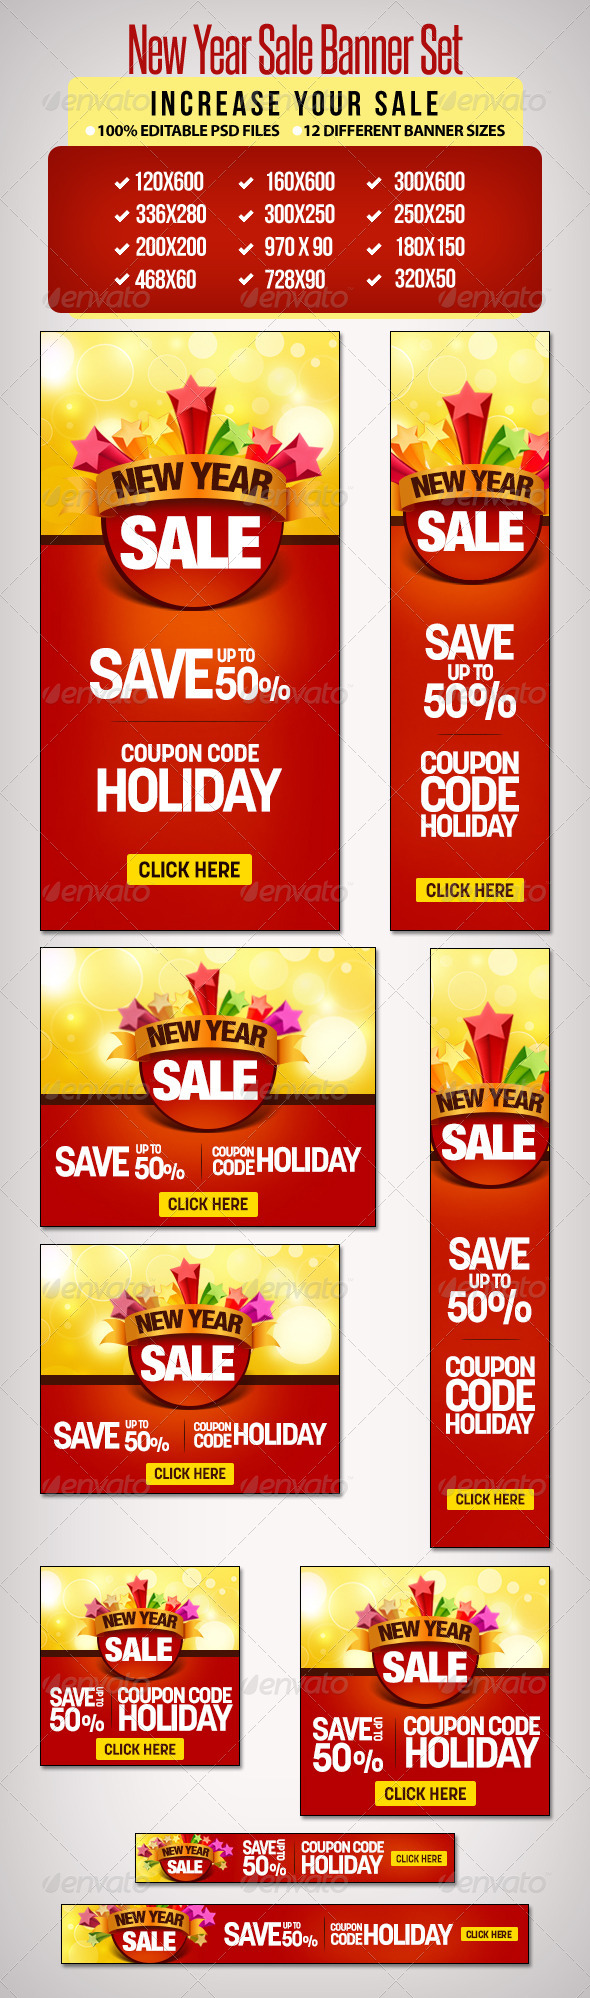 New Year Sale Banner Set 2 - 12 Sizes - Banners & Ads Web Elements